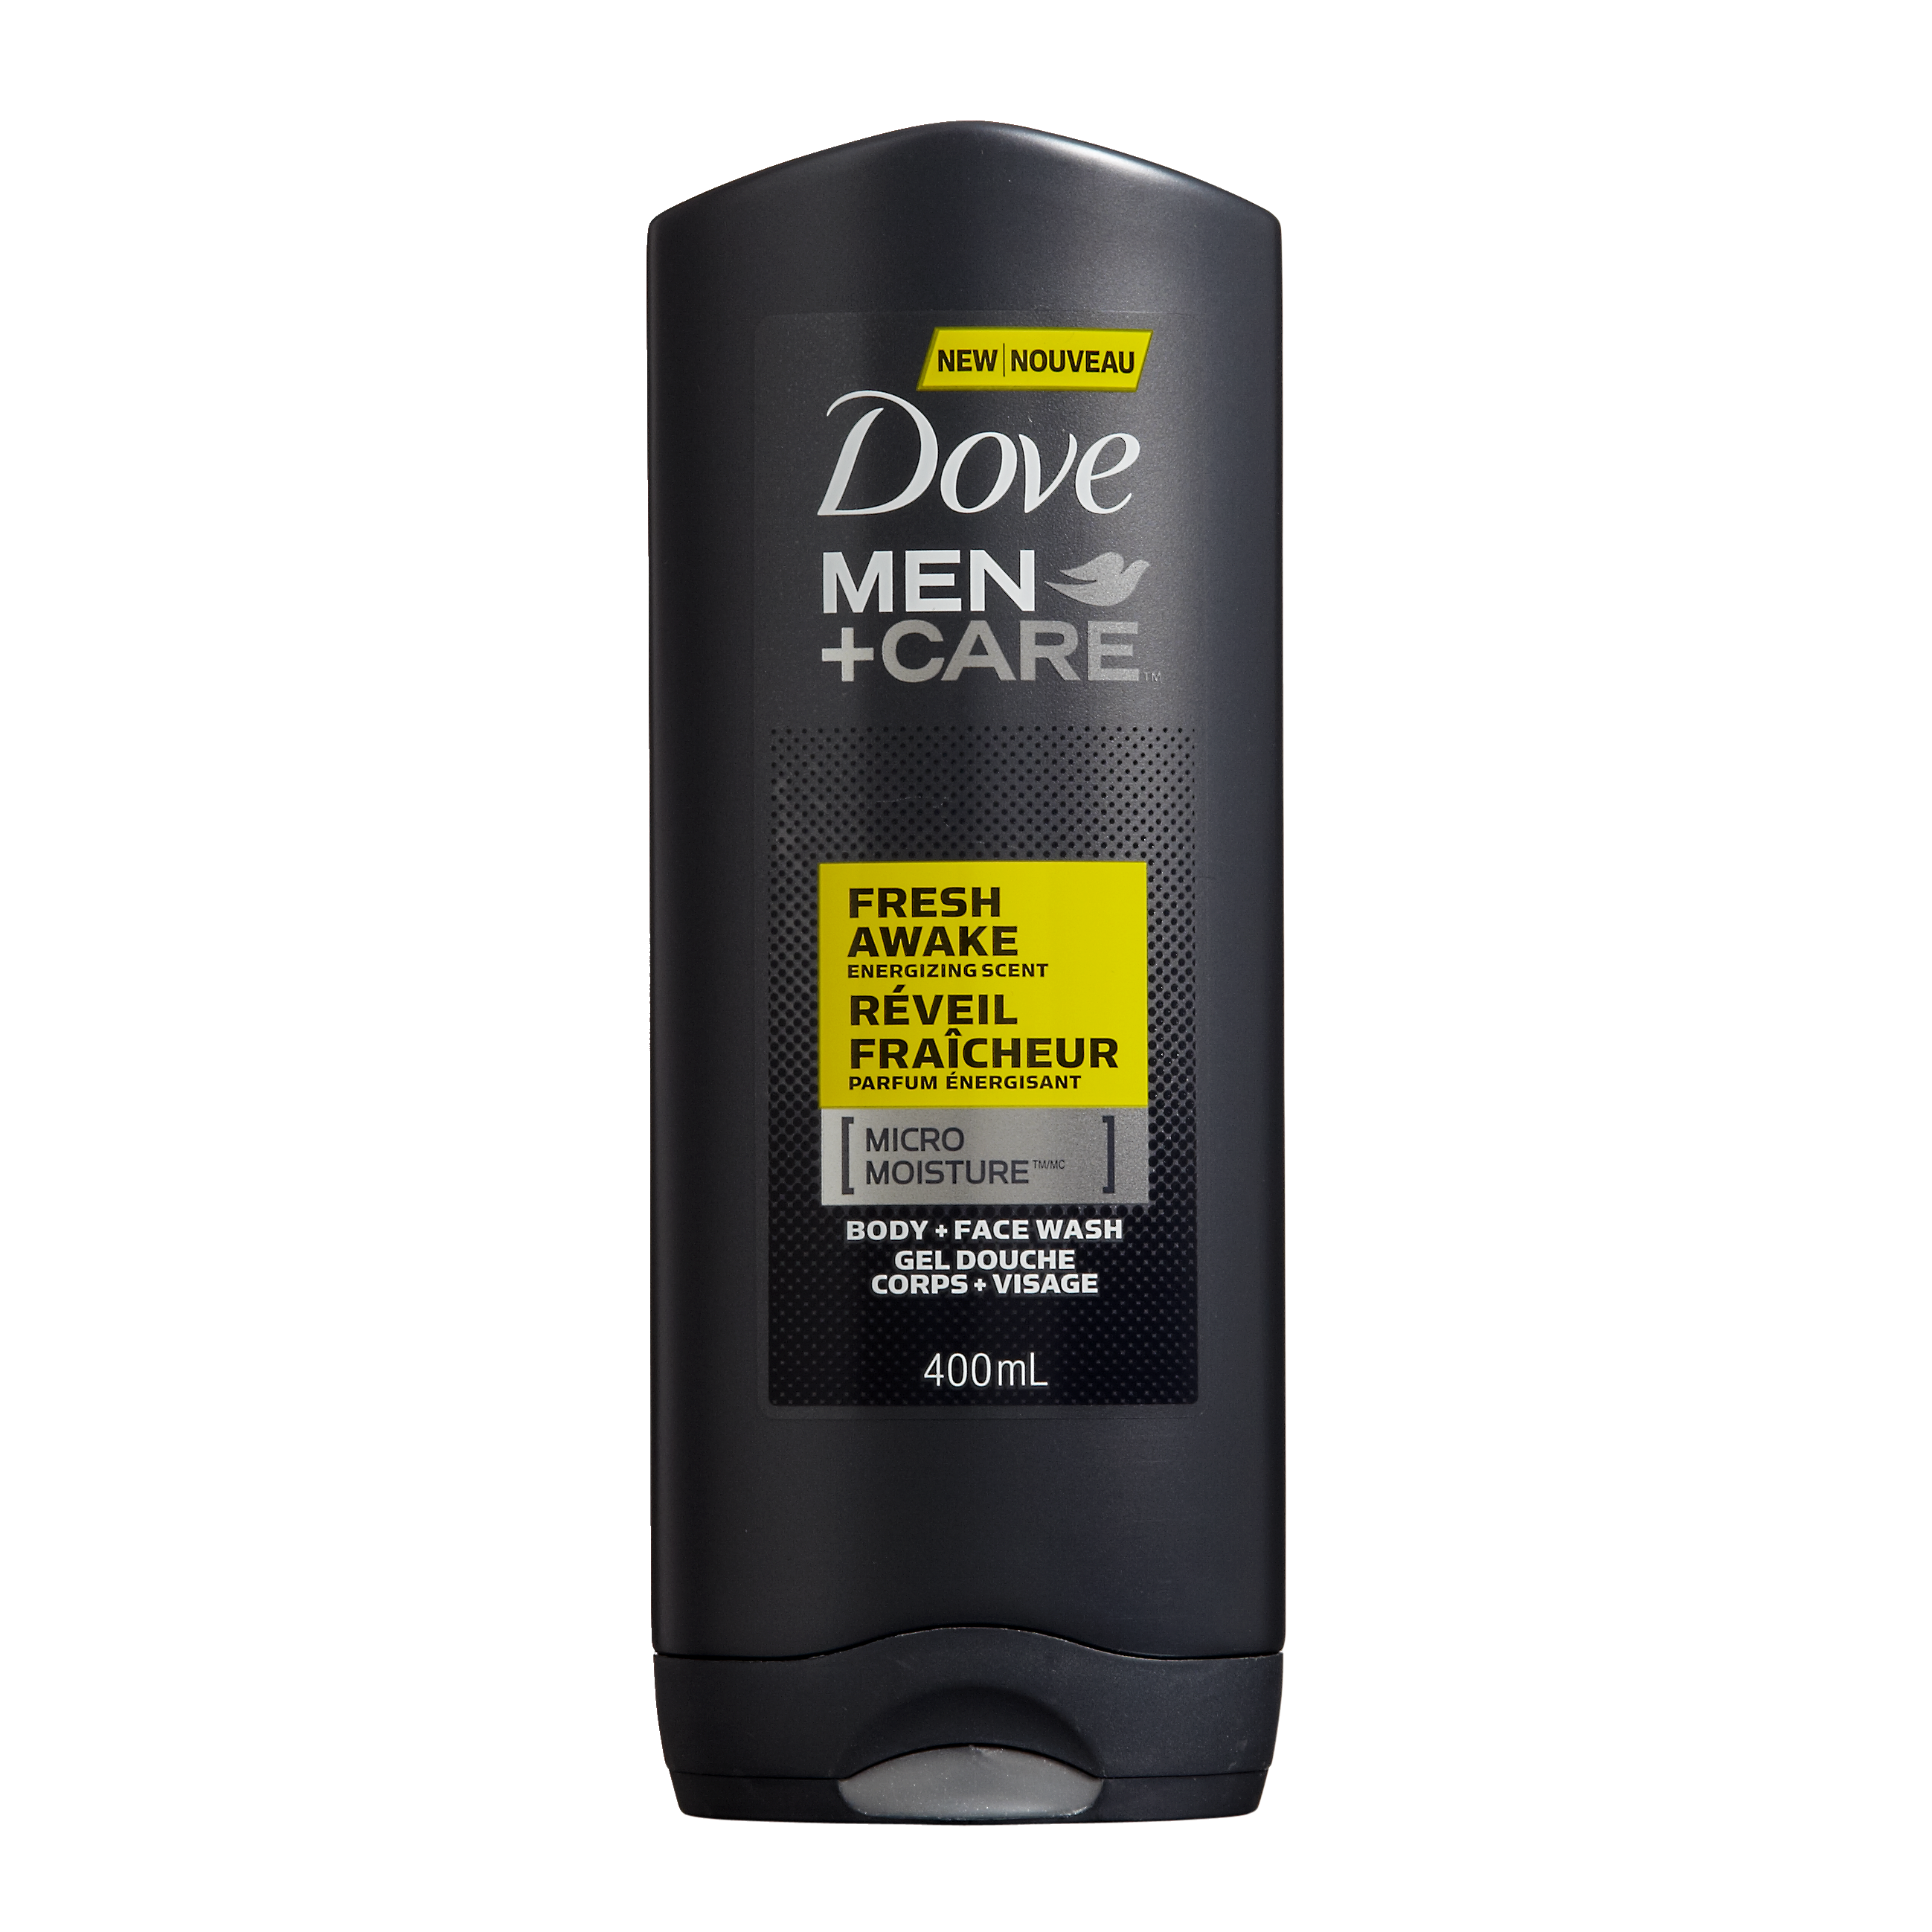 Dove Men + Care Energizing Scent Body and Face Wash Fresh Awake 400 mL